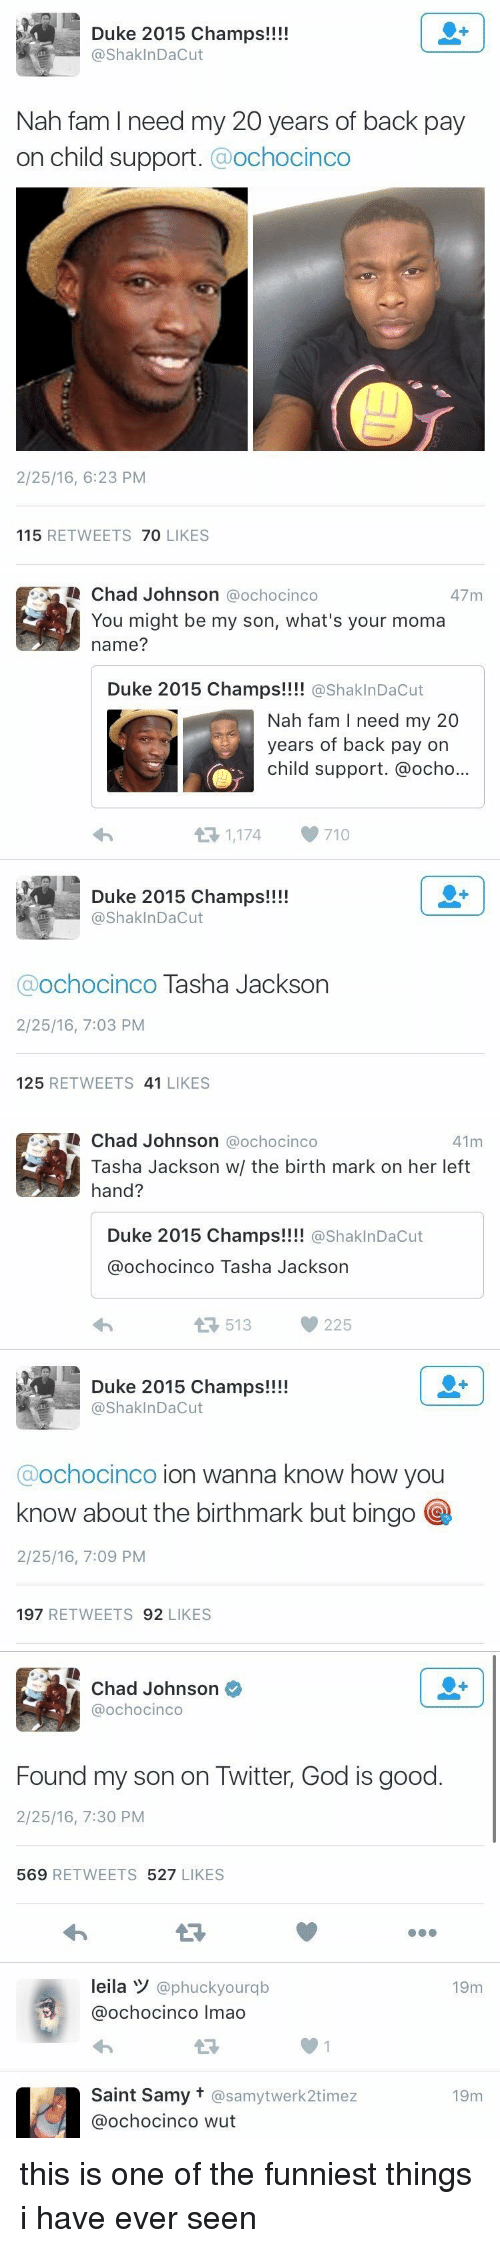 Child Support, Fam, and God: Duke 2015 champs!!!!  ShaklnDacut  Nah fam l need my 20 years of back pay  on child support  Ochocinco  2/25/16, 6:23 PM  115  RETWEETS  70  LIKES   Chad Johnson  a ochocinco  47 m  You might be my son, what's your moma  name?  Duke 2015 Champs!!!!  @Shakl nDacut  Nah fam I need my 20  years of back pay on  child support. @ocho...  1,174, 710  t Duke 2015 Champs!!!!  Shak InDacut  Ochocinco  Tasha Jackson  2/25/16, 7:03 PM  125  RETWEETS 41  LIKES   Chad Johnson  @ochocinco  41m  Tasha Jackson w/ the birth mark on her left  hand?  Duke 2015 Champs!!!!  ashakInDacut  ochocinco Tasha Jackson  513  225  Duke 2015 Champs!!!!  Shak InDacut  Ochocinco  ion wanna know how you  know about the birthmark but bingo  2/25/16, 7:09 PM  197  RETWEETS  92  LIKES   Chad Johnson  @ochocinco  Found my son on Twitter, God is good  2/25/16, 7:30 PM  569  RETWEETS  527  LIKES  leila W  @phuckyourqb  19m  ochocinco lmao  Saint Samy t @samytwerk2timez  19m  Ca ochocinco wut this is one of the funniest things i have ever seen